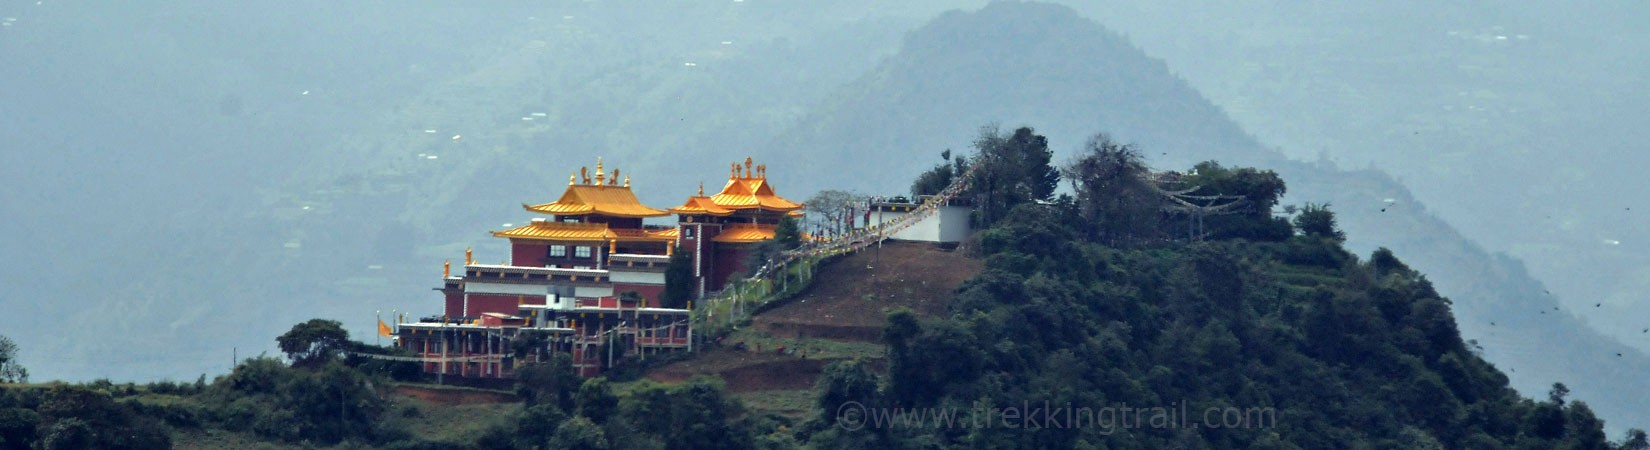 nepal bhutan winter tour